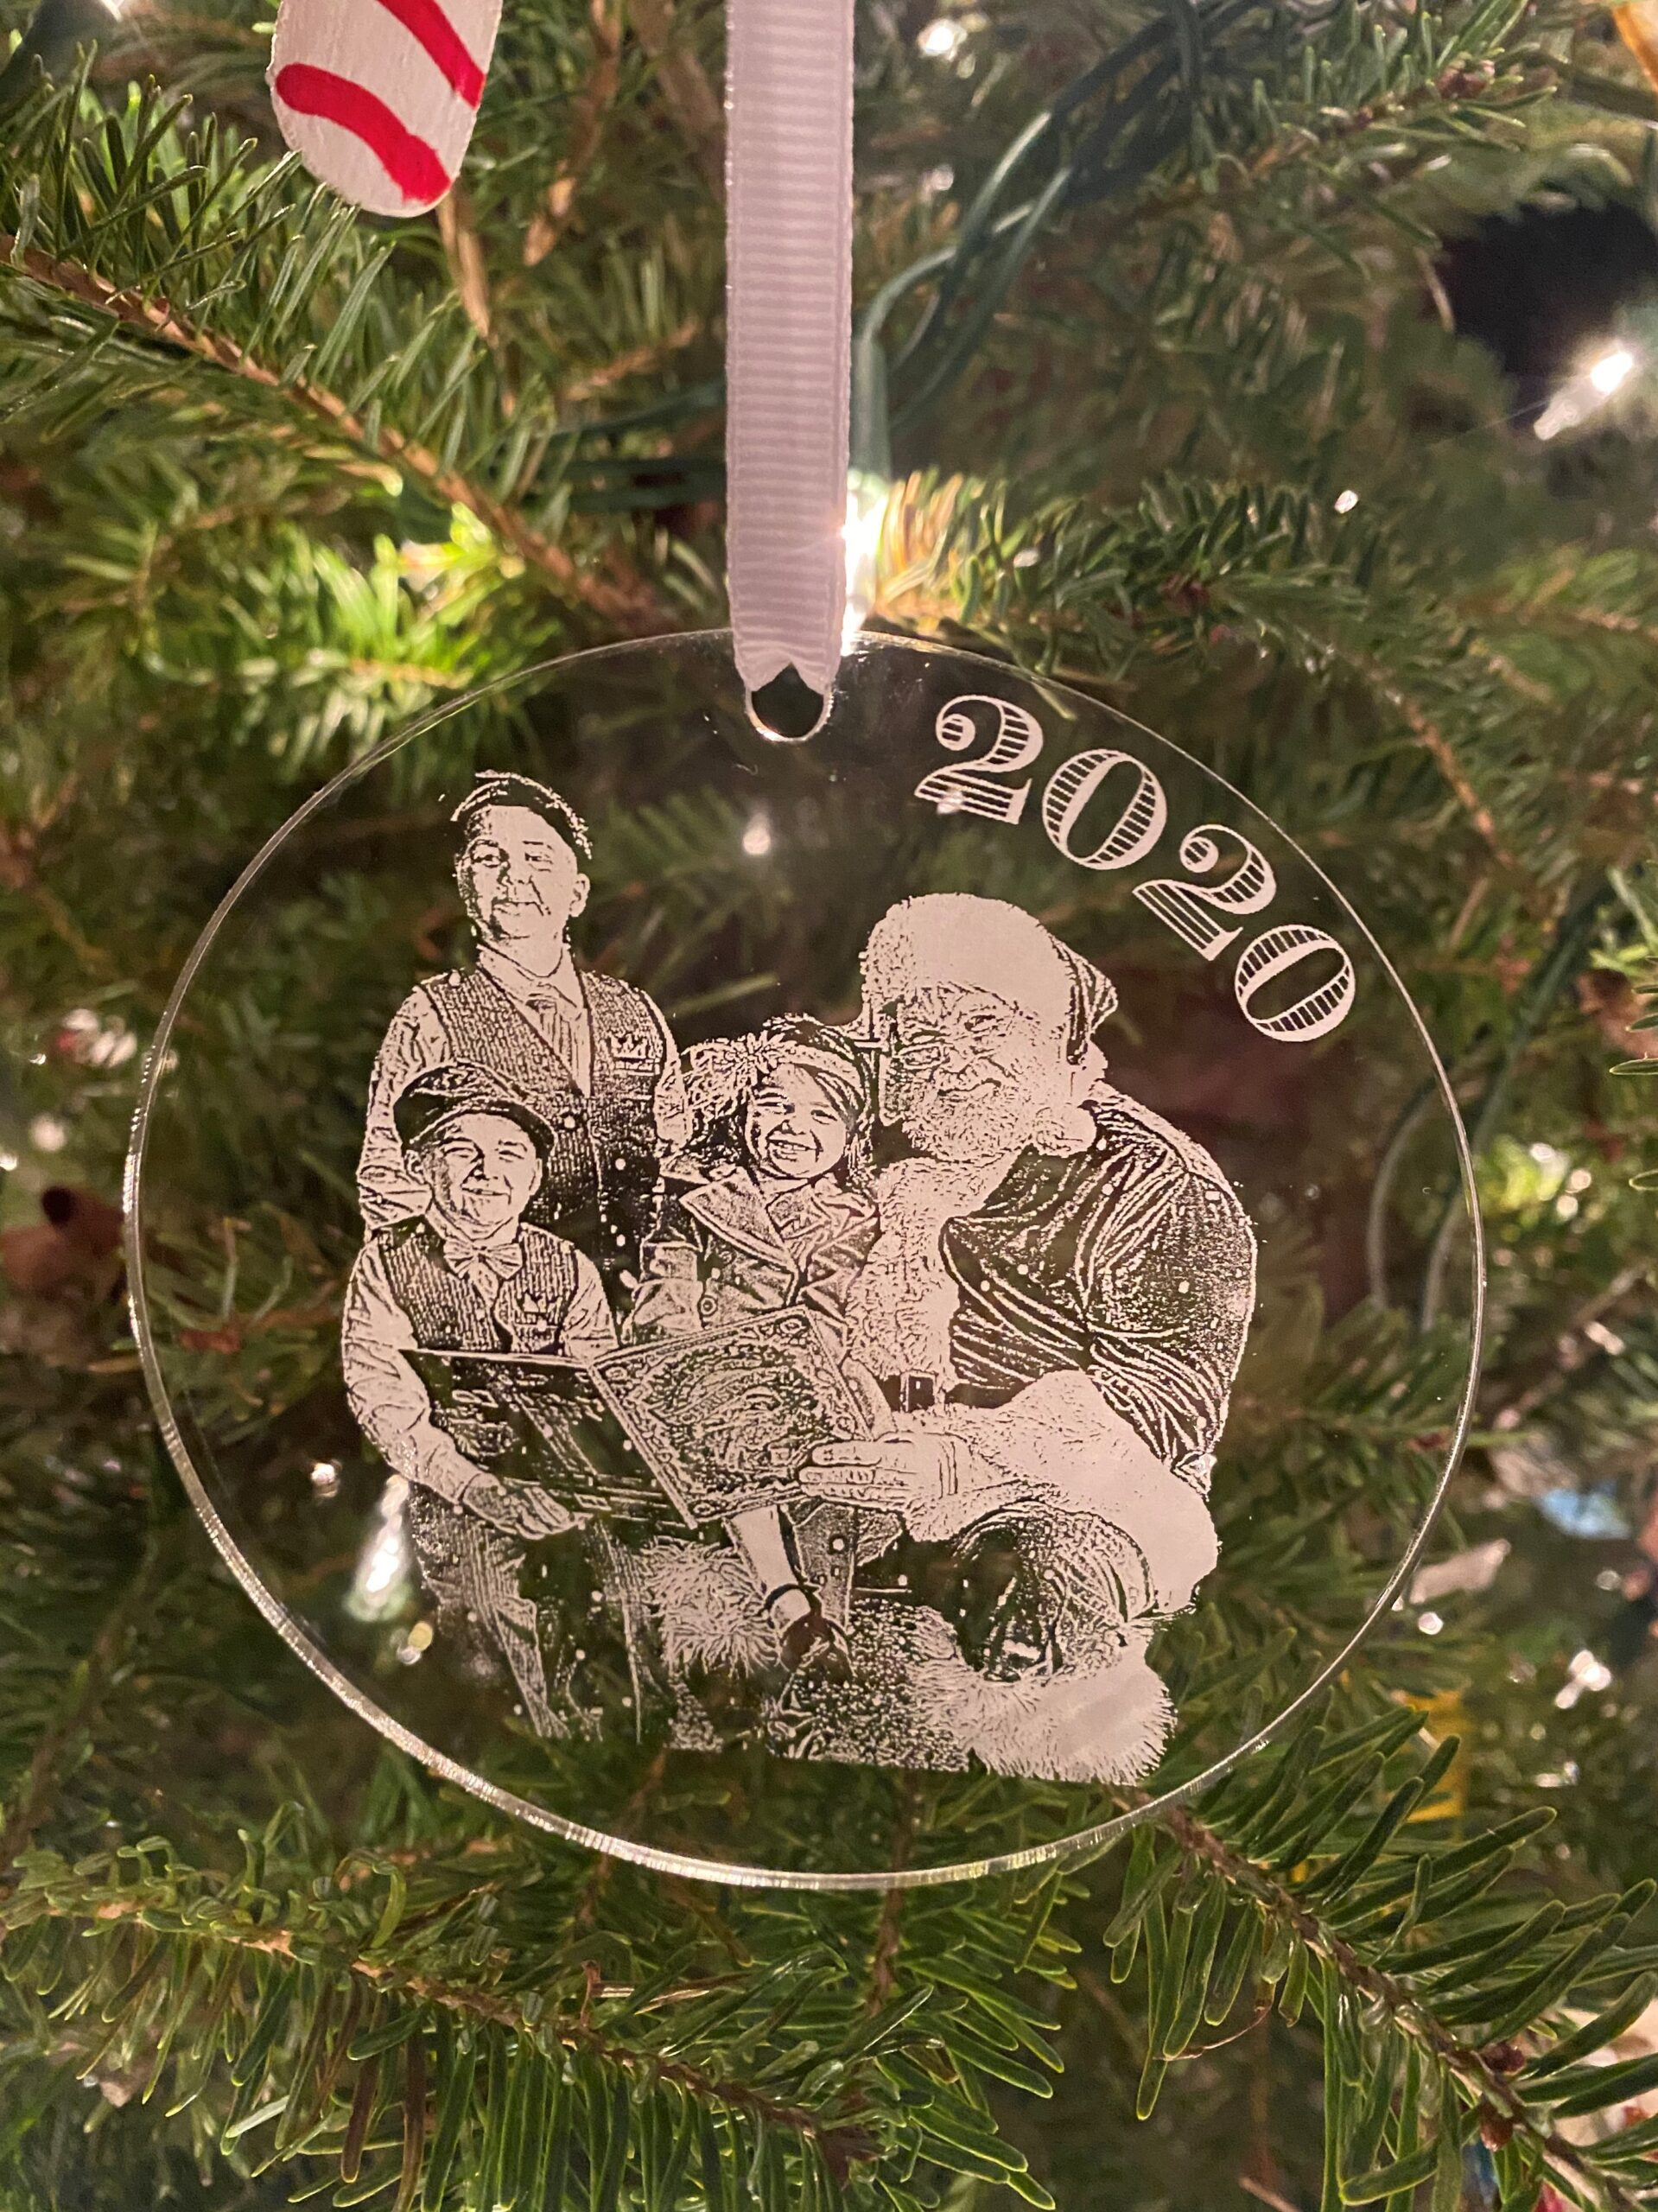 Laser etched Christmas ornament